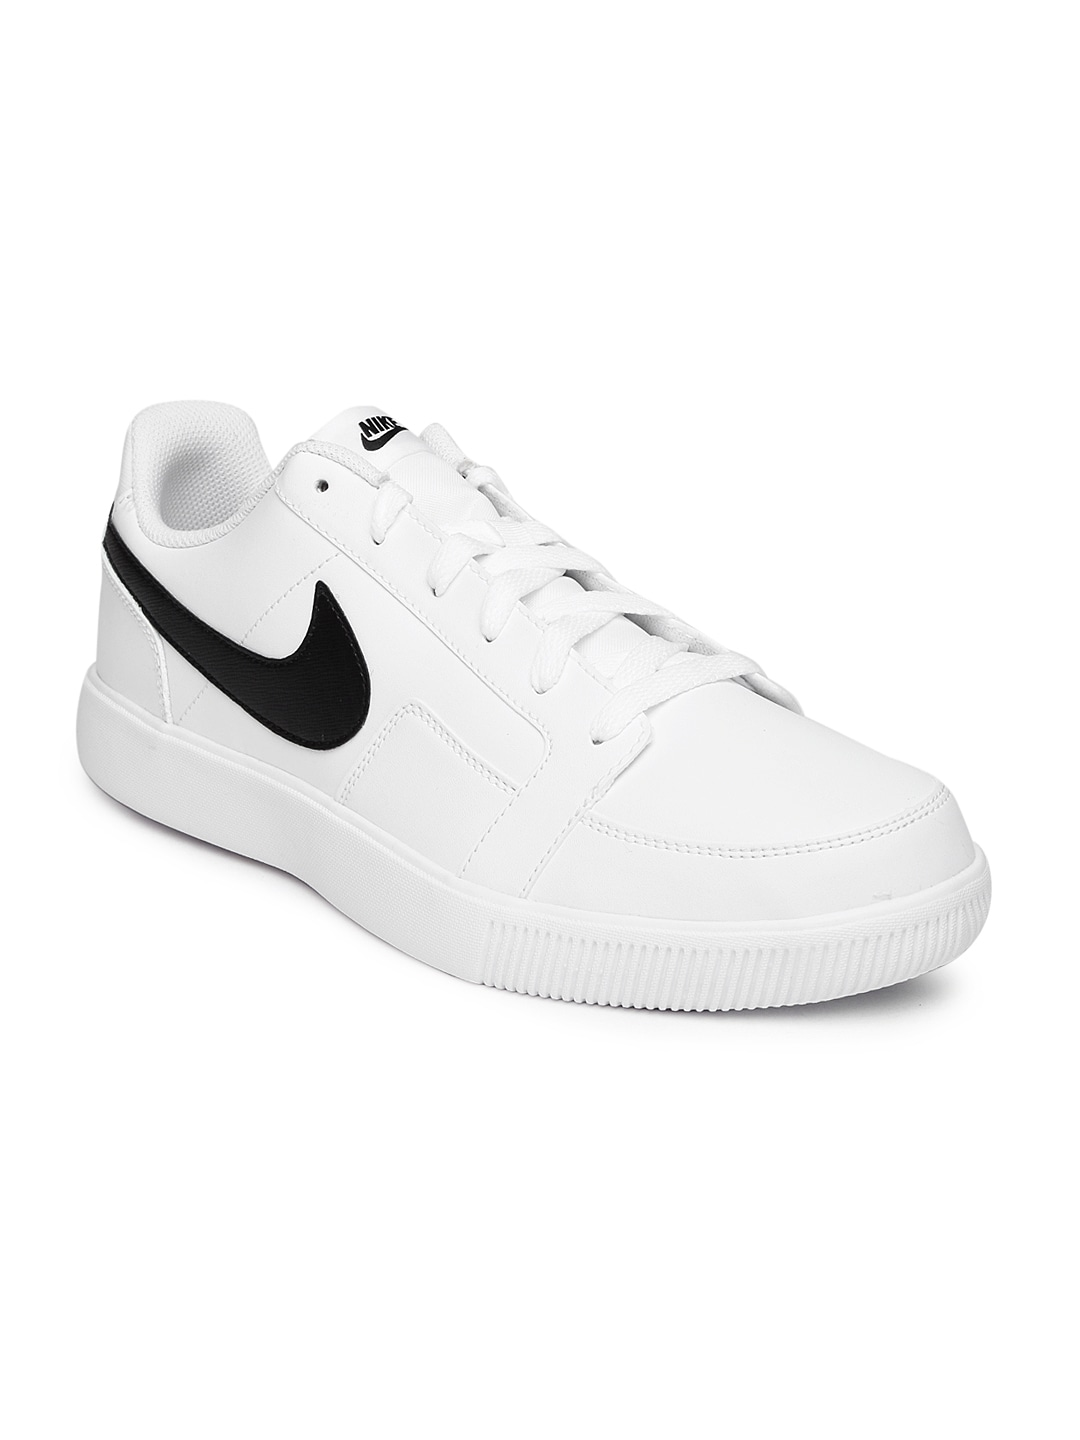 uk availability cac7e 8aa7d Nike 631410-102 Men White Leather Casual Shoes- Price in India